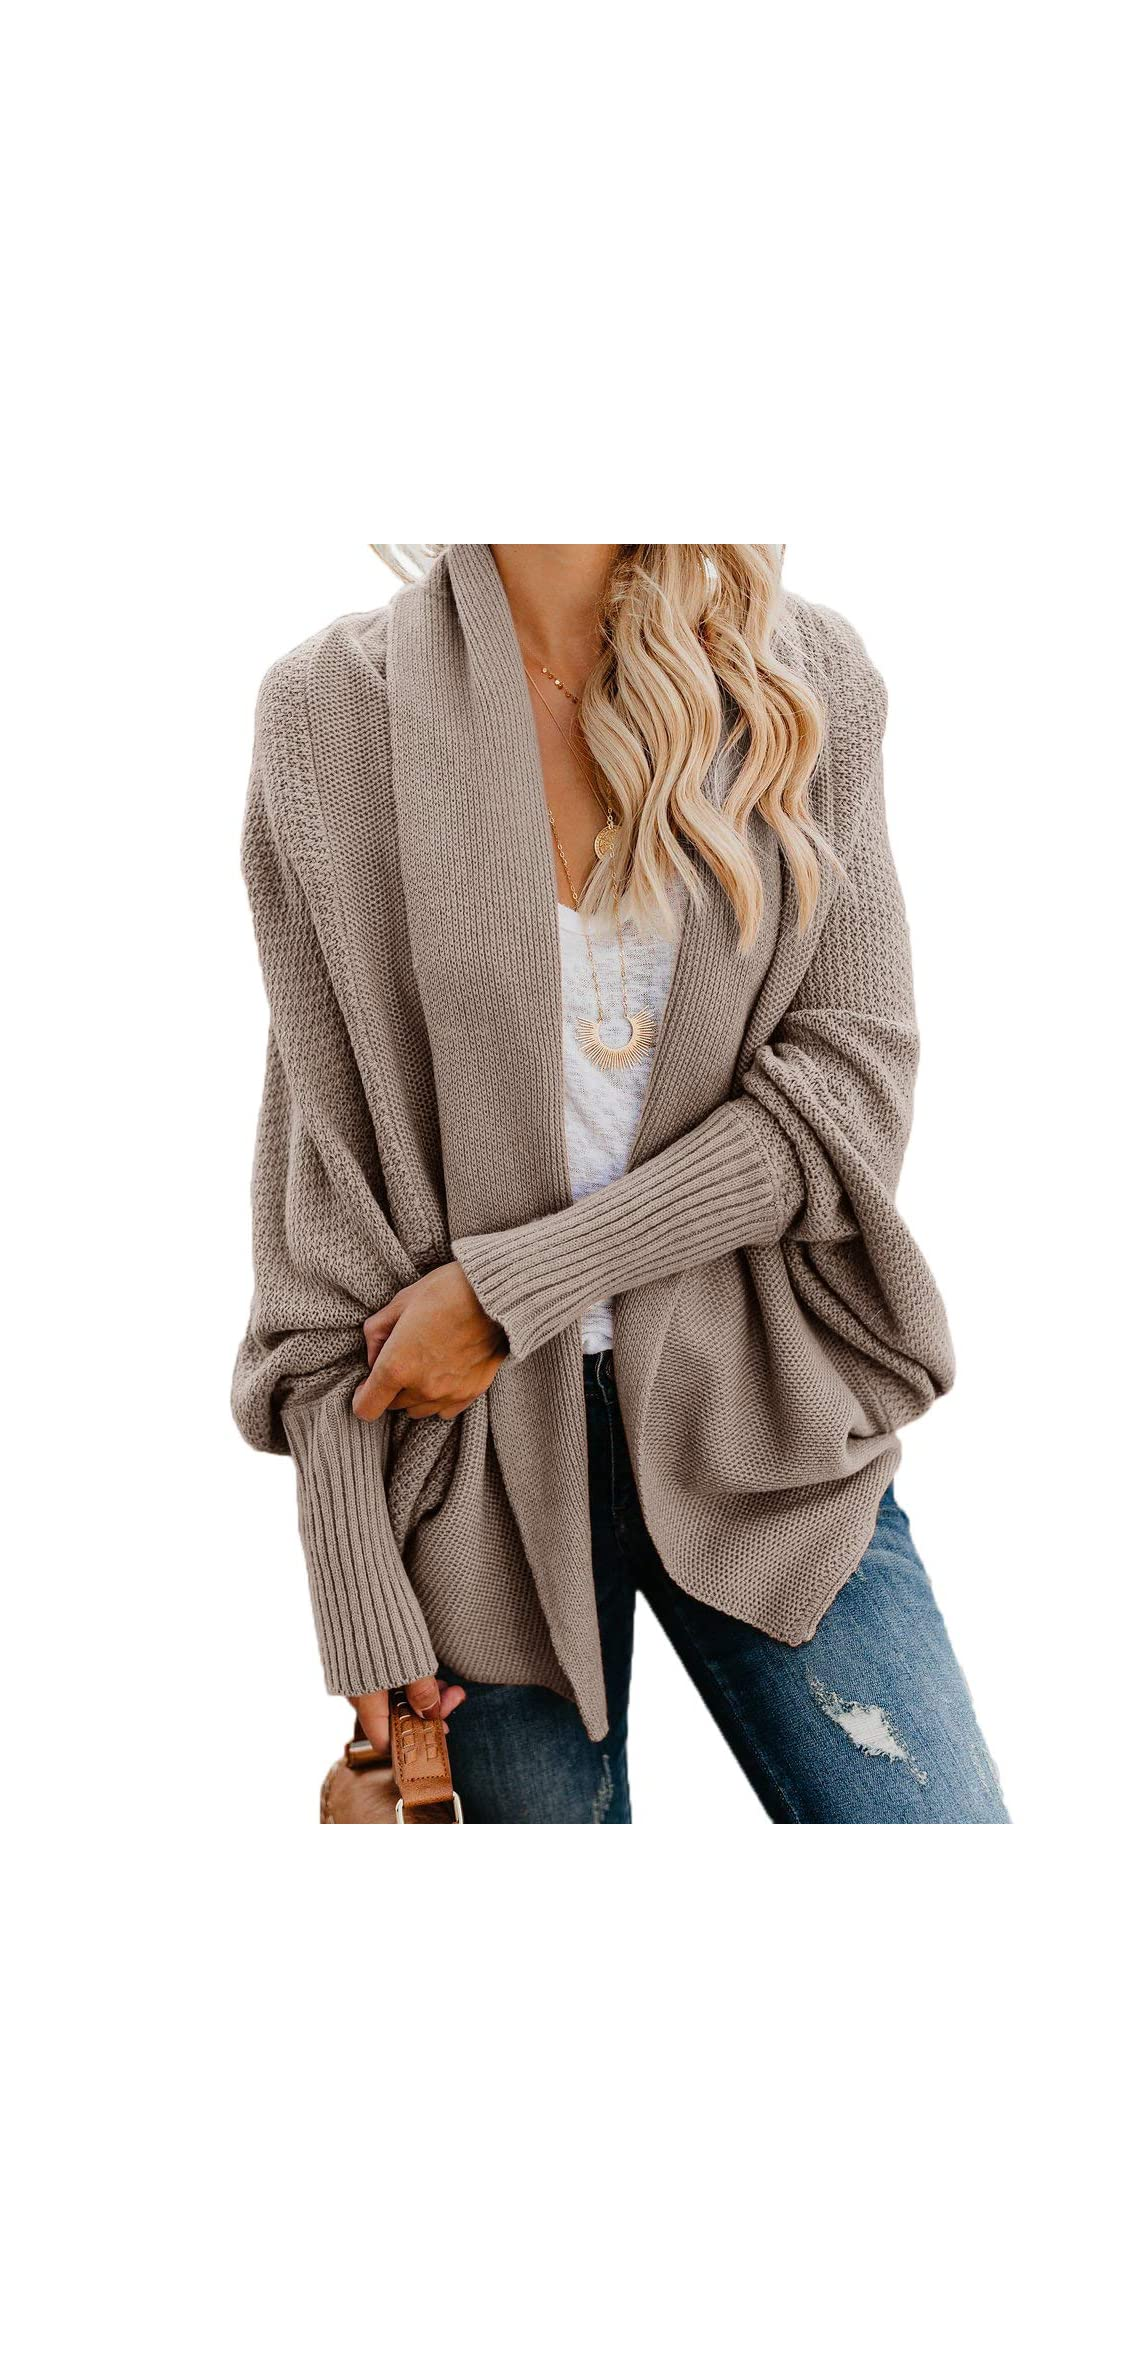 Womens Cardigans Oversized Open Front Batwing Knit